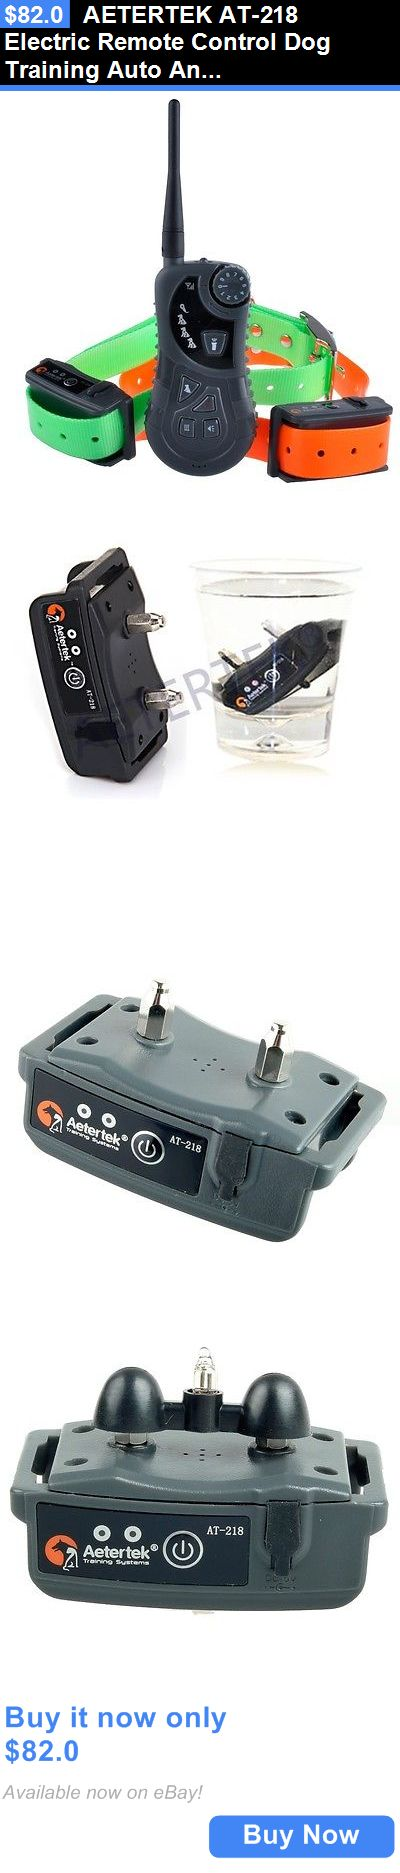 Pet Supplies: Aetertek At-218 Electric Remote Control Dog Training Auto Anti Bark Collar Shock BUY IT NOW ONLY: $82.0